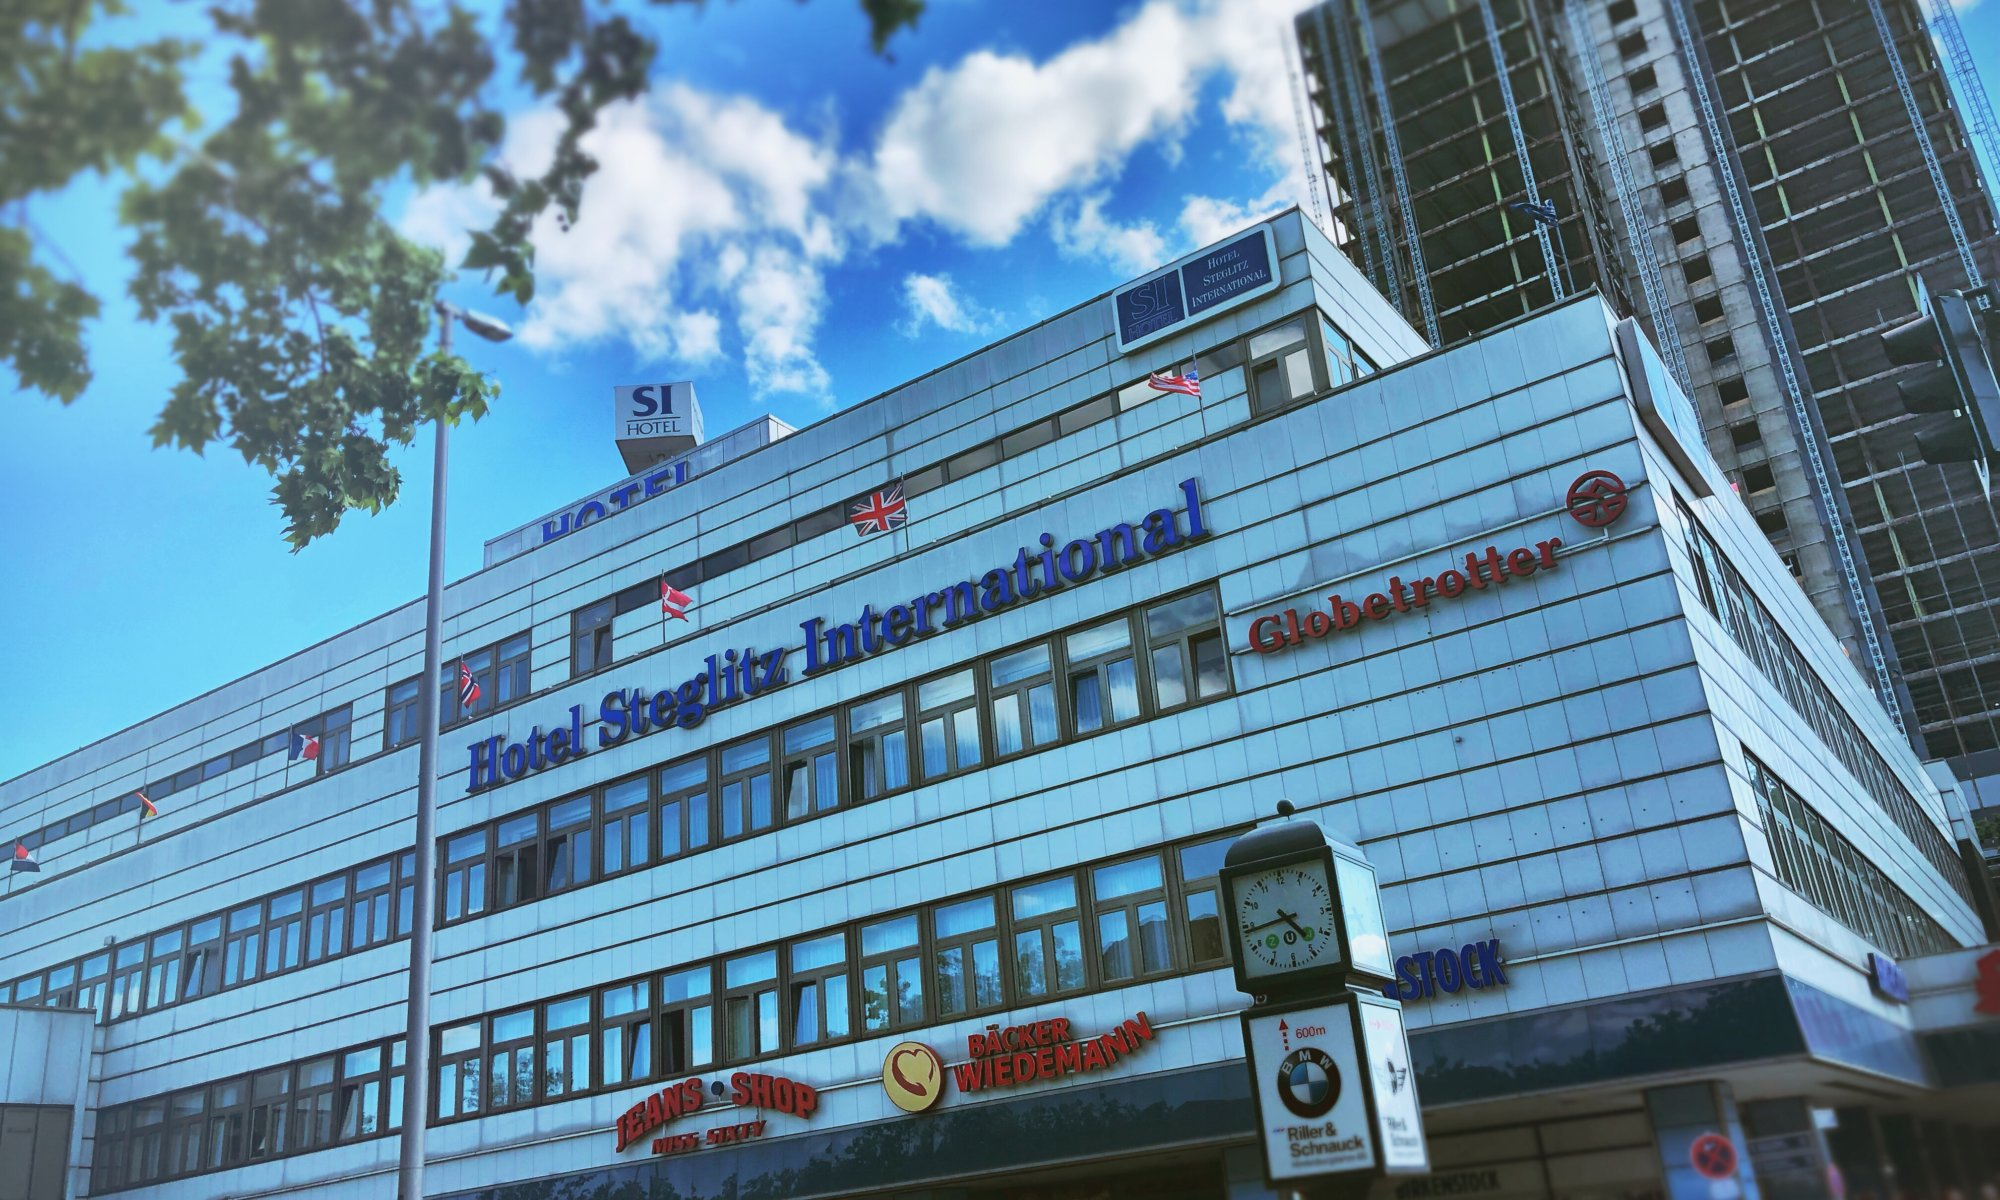 Hotel Steglitz International, Berlin